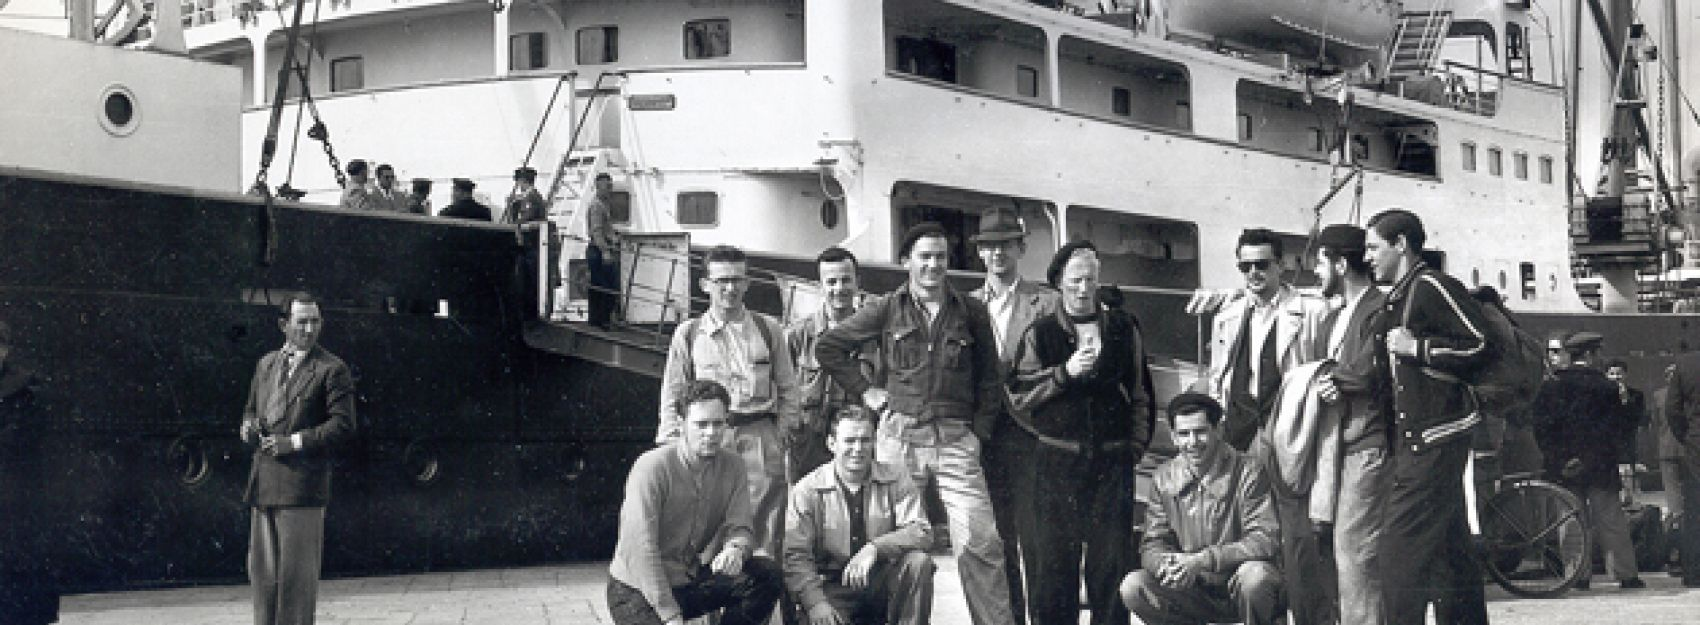 Students in front of boat in 1950